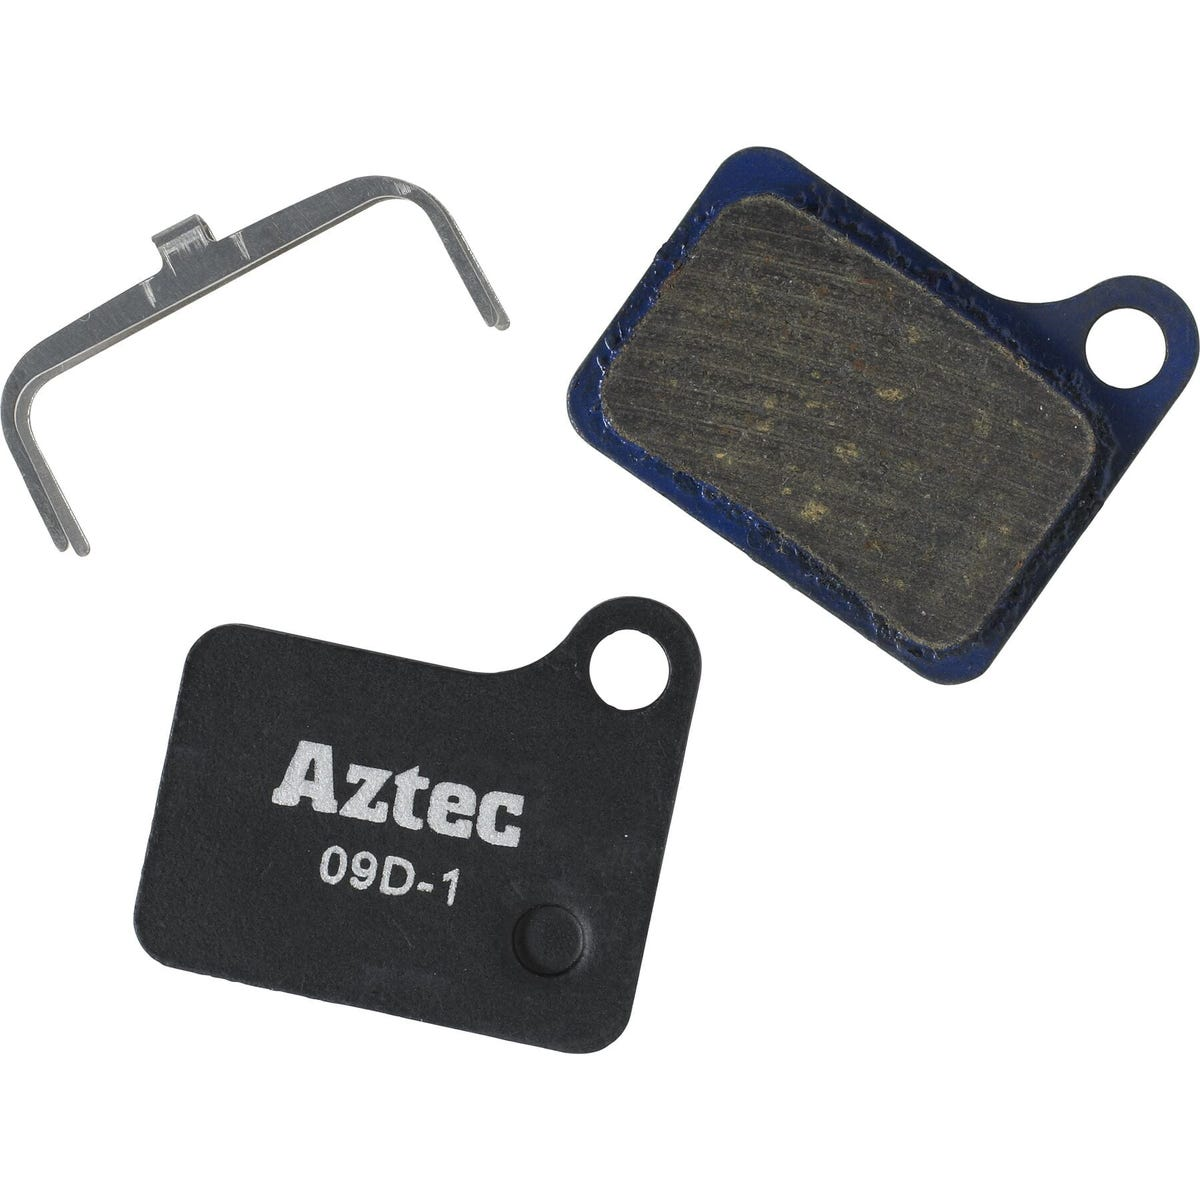 Aztec Organic disc brake pads for Shimano Deore M555 hydraulic / C900 Nexave